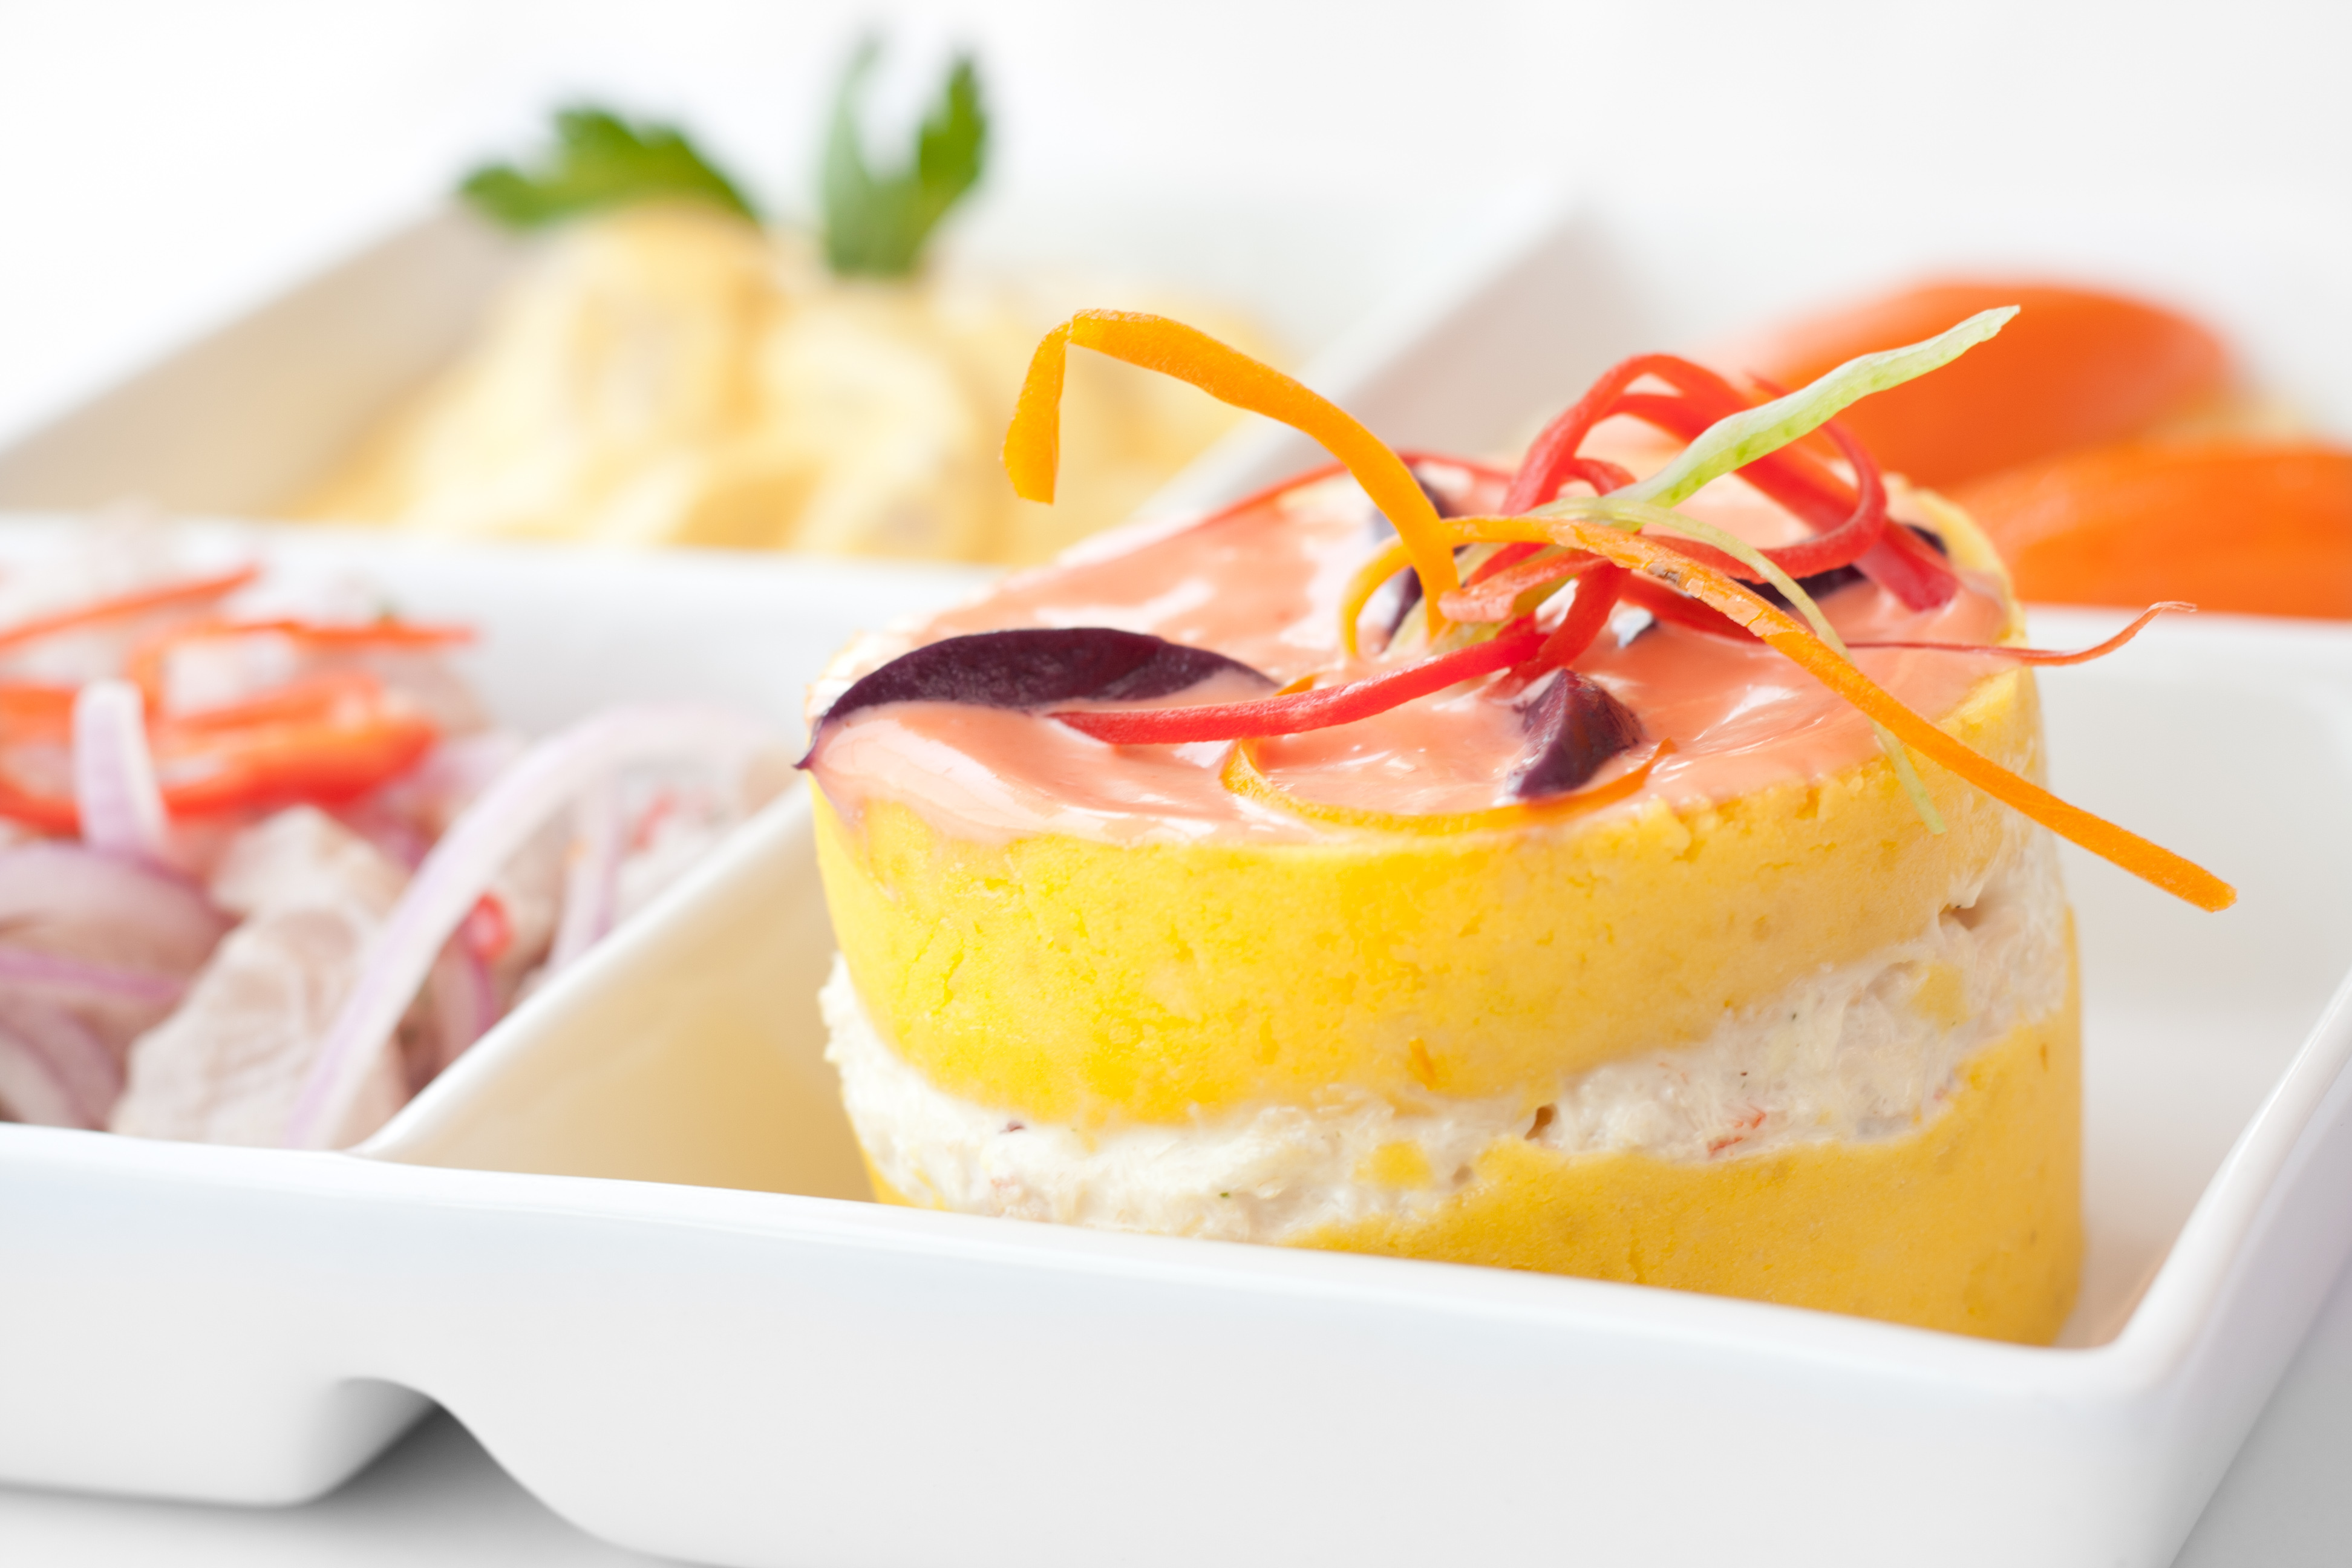 Southern Arizona and Tucson Catering of the finest quality Peruvian cuisine.